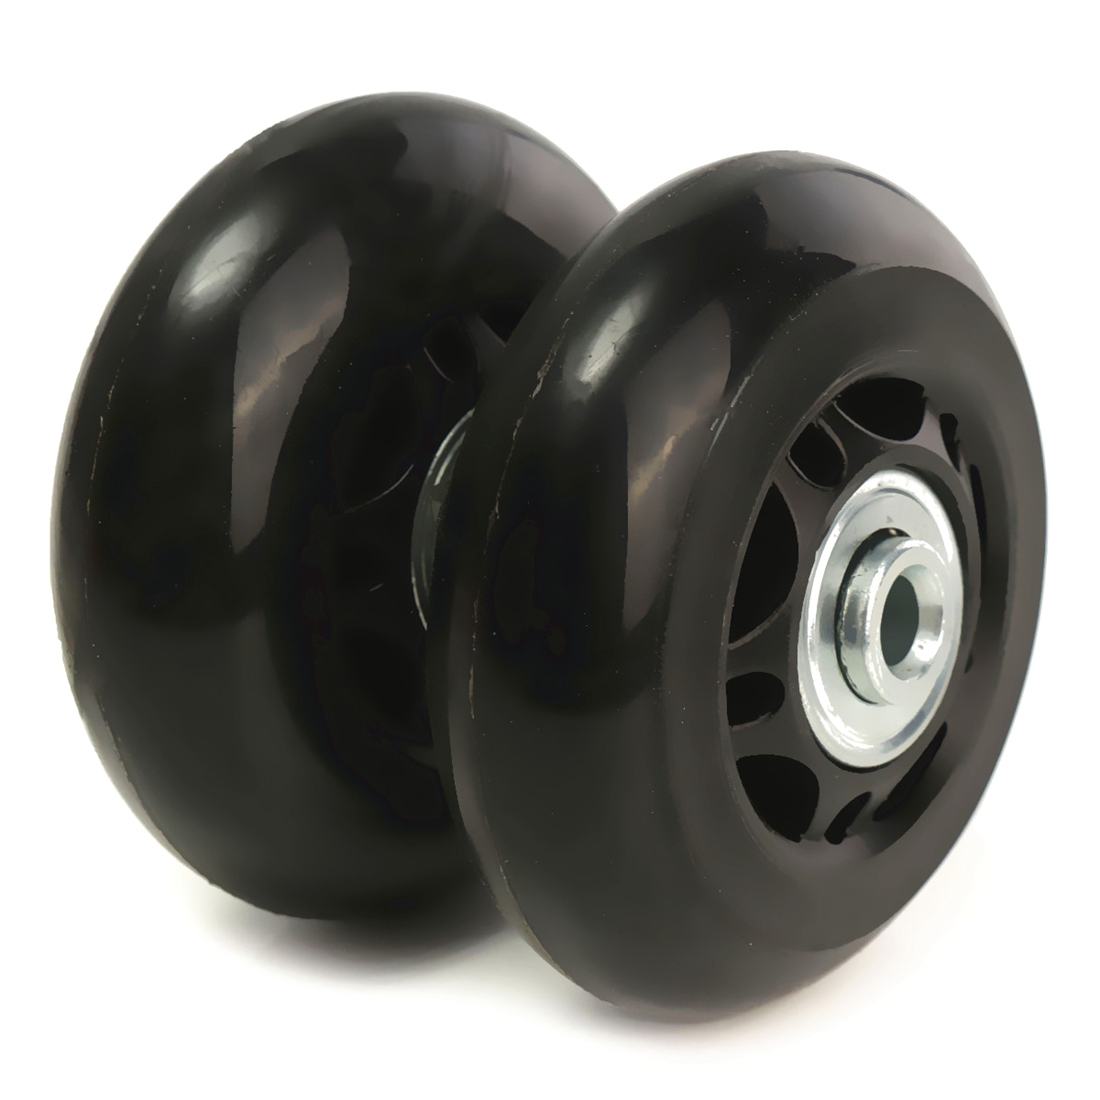 2 Set Luggage Suitcase Replacement Wheels Axles Rubber Deluxe Repair OD 64mm New